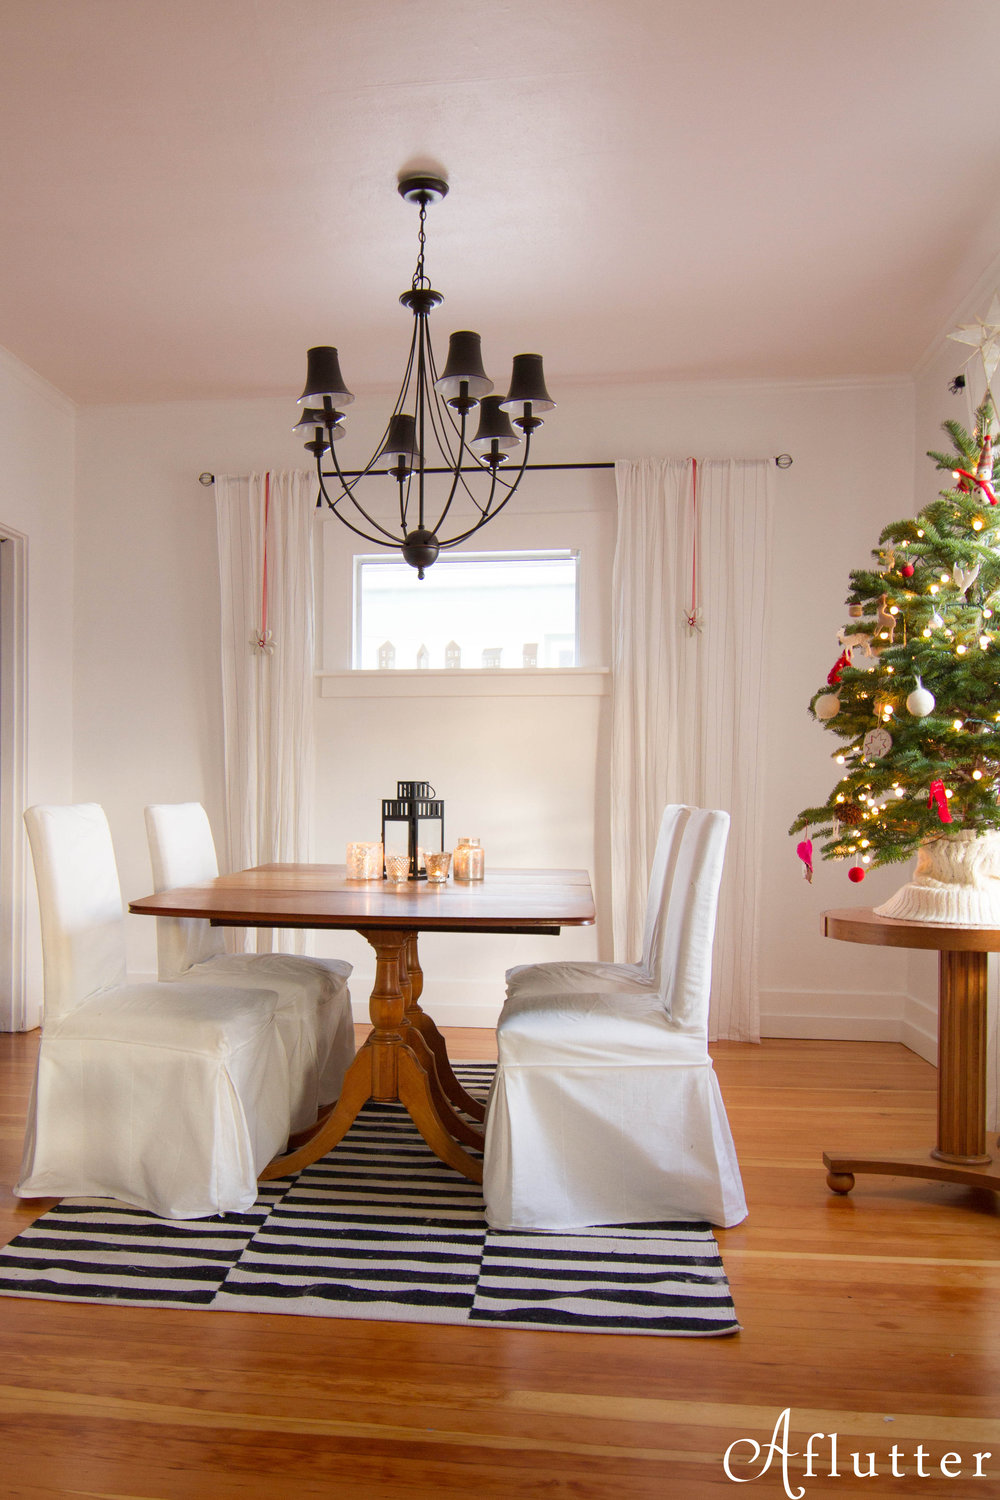 Christmas-Dining-Room-7-of-8.jpg